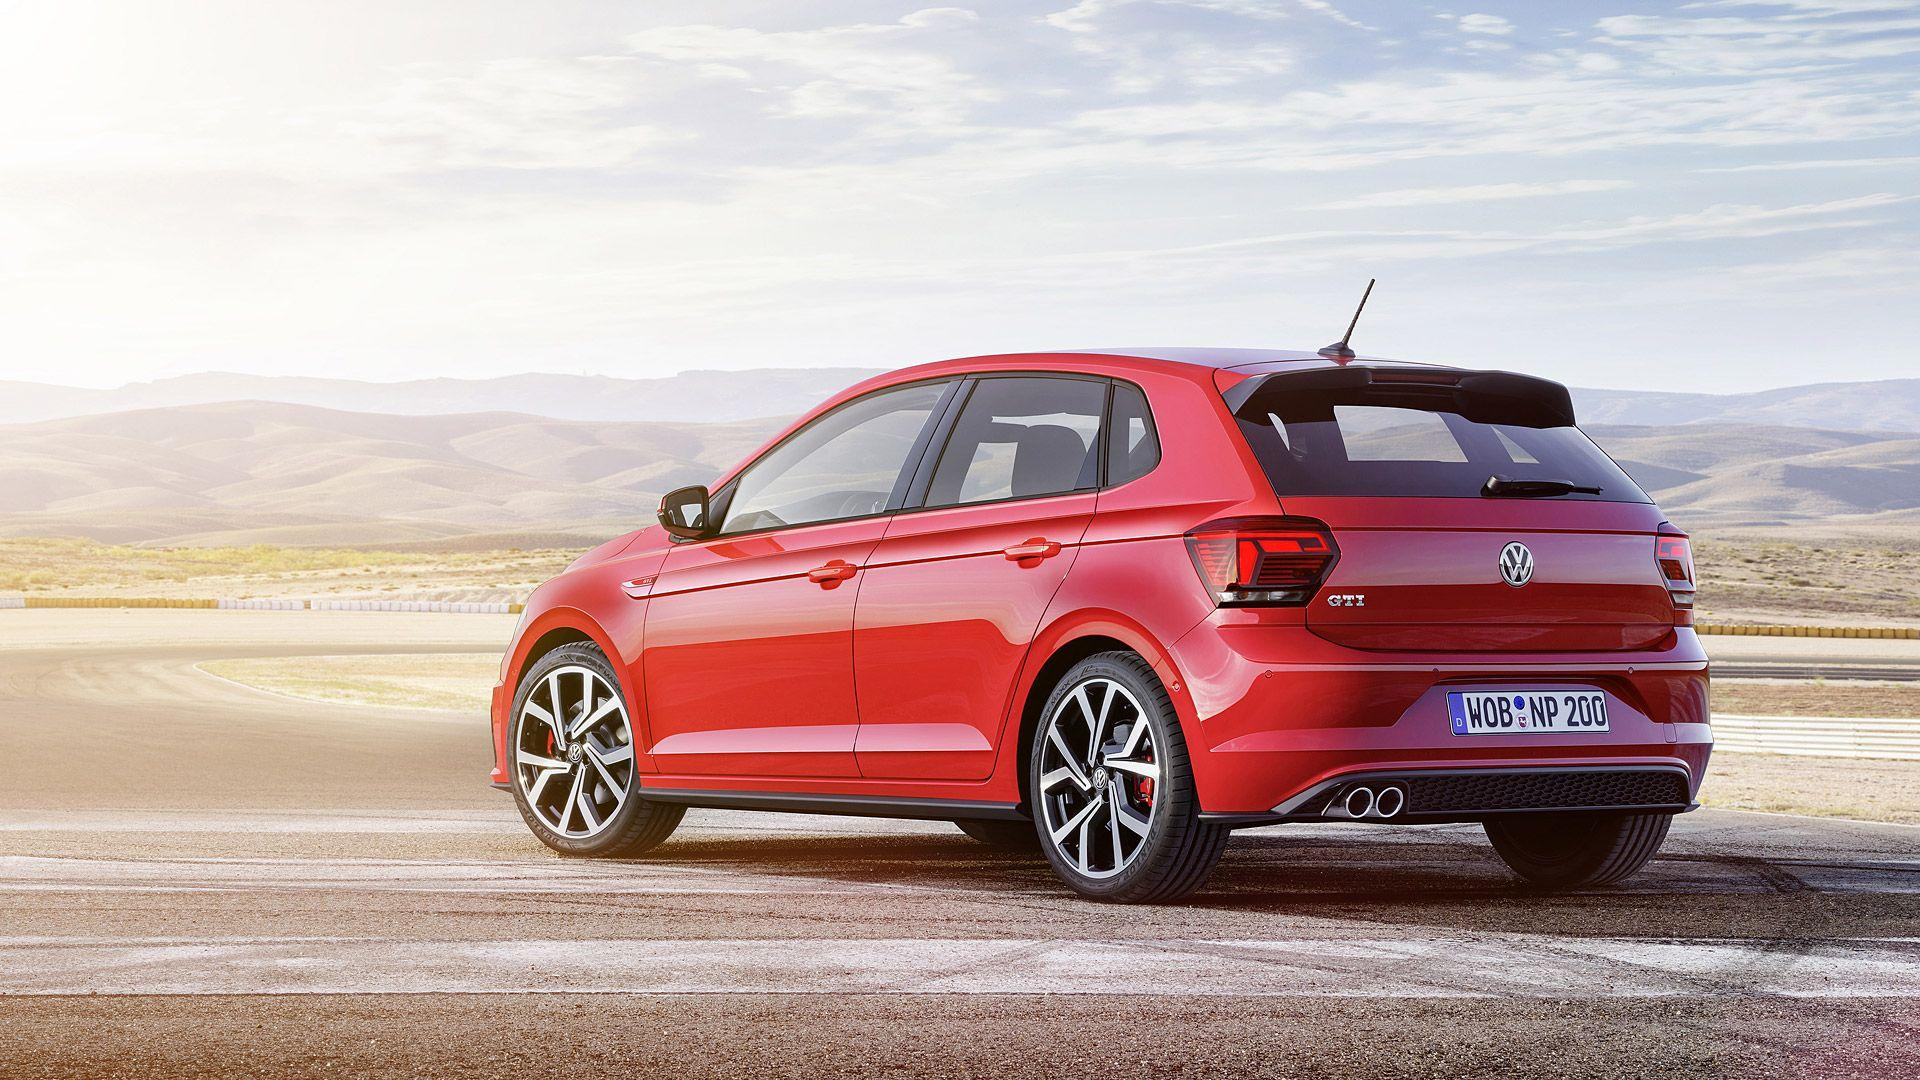 2018 Volkswagen Polo GTI Wallpapers & HD Images - WSupercars